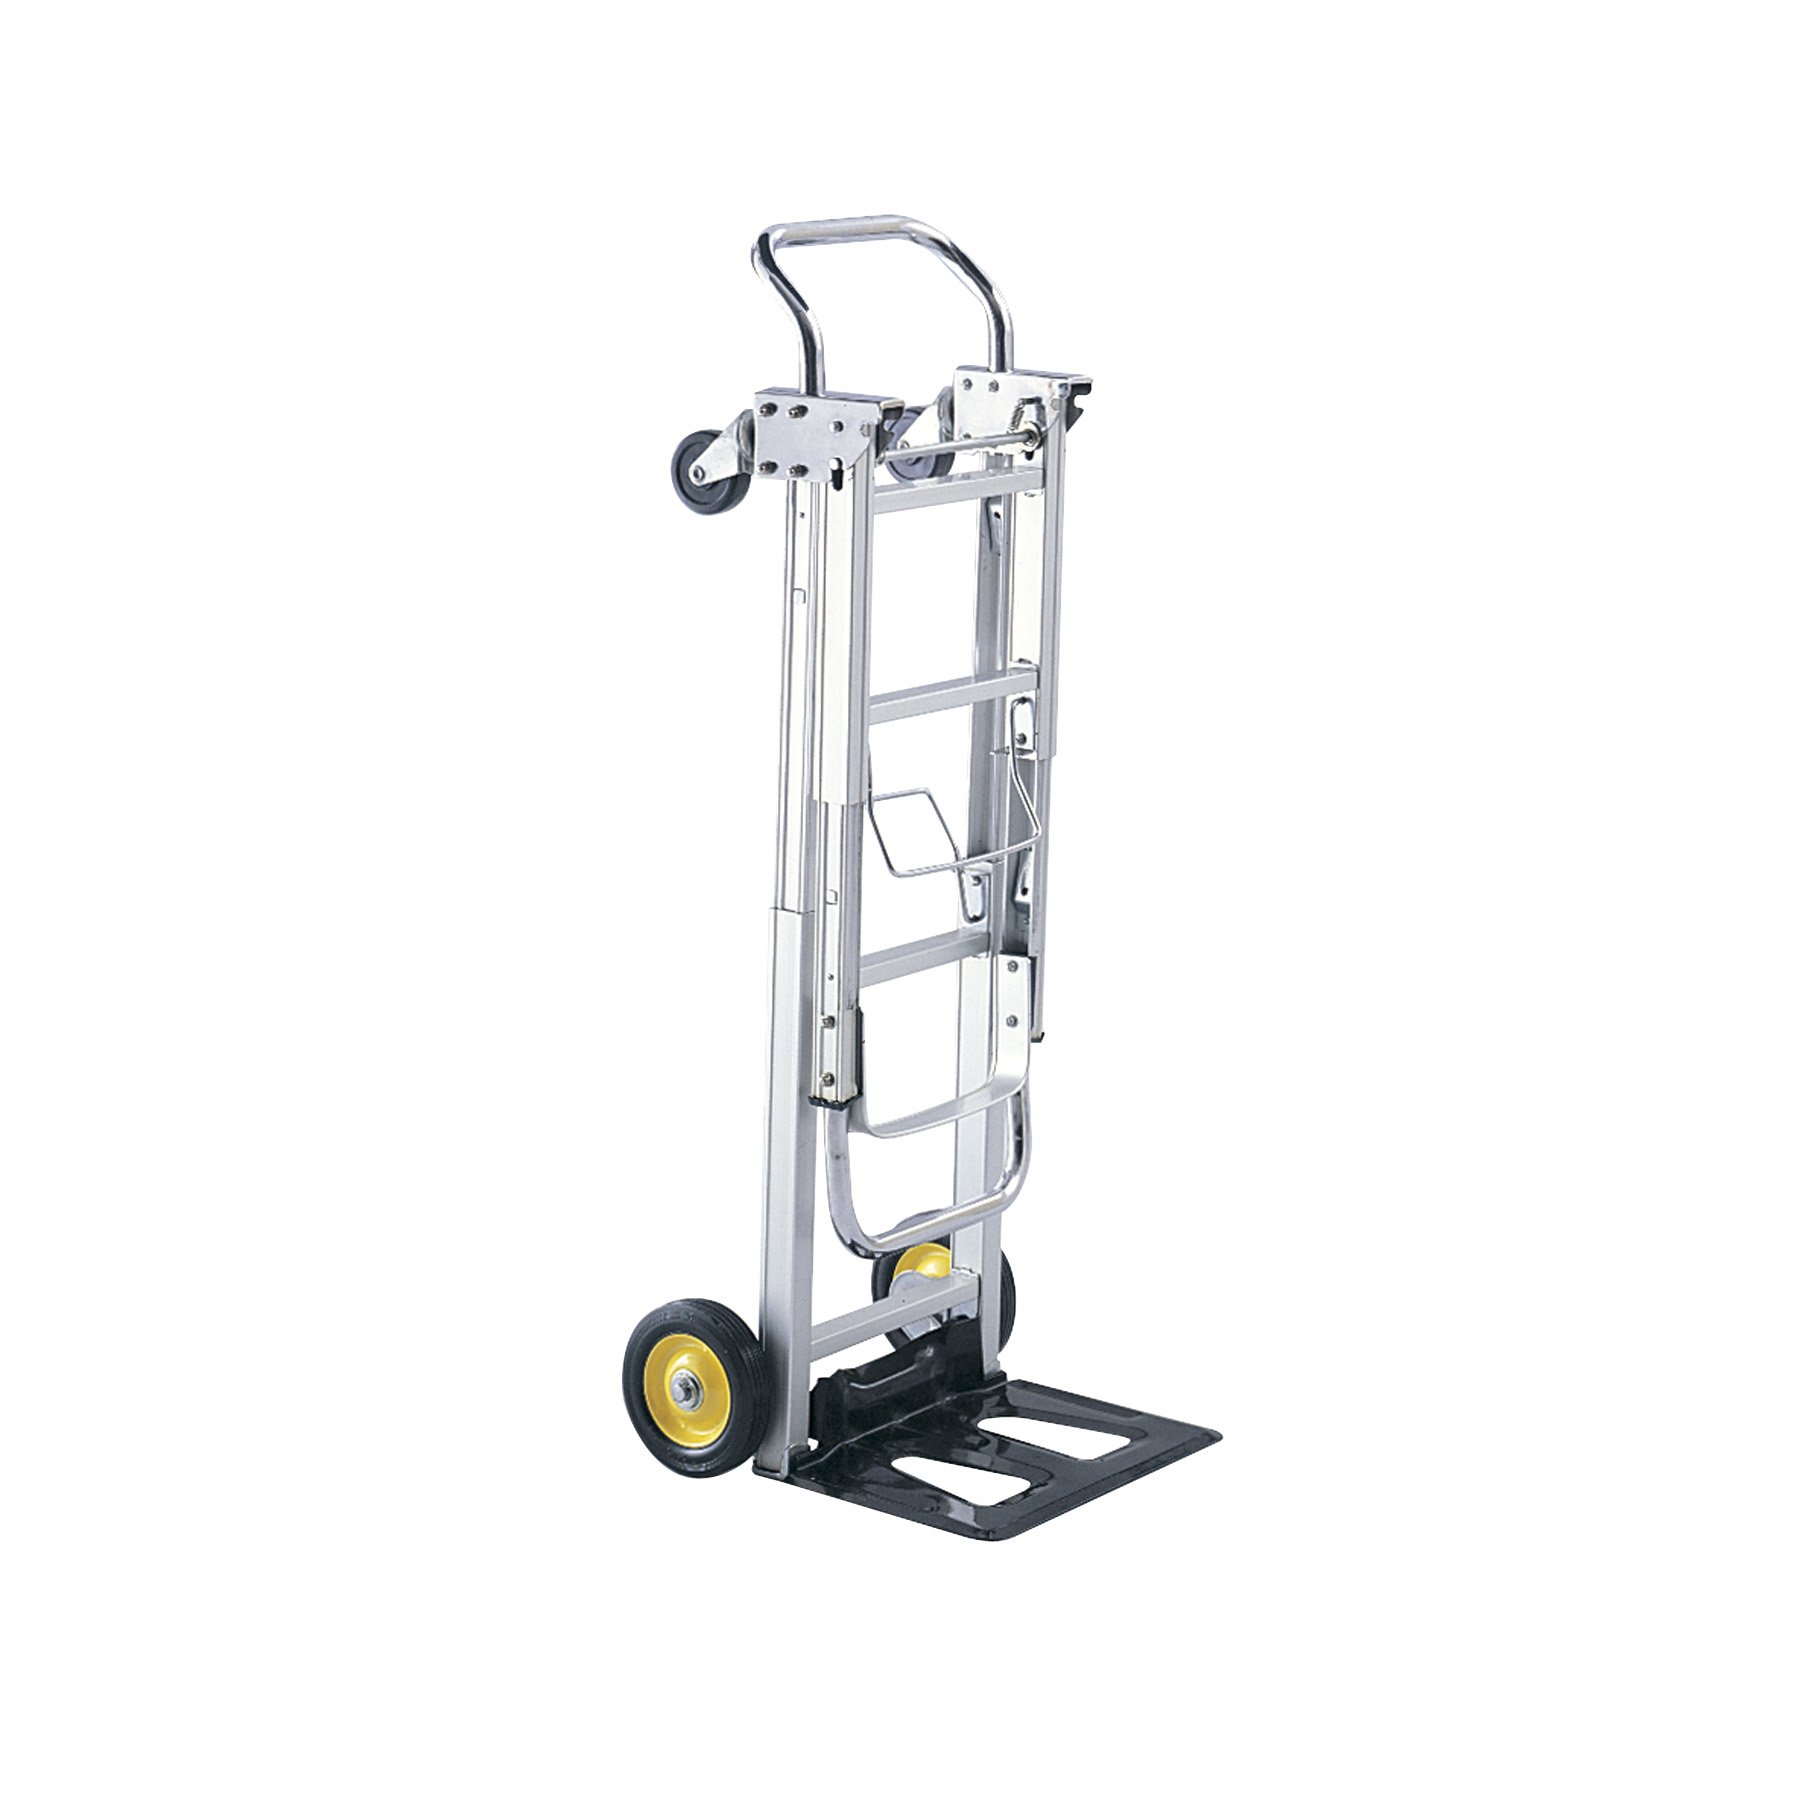 Safco Products Hide-Away Convertible Hand Truck 4050, Dual Function, 400 lbs. Total Capacity, Aluminum Frame by Safco Products